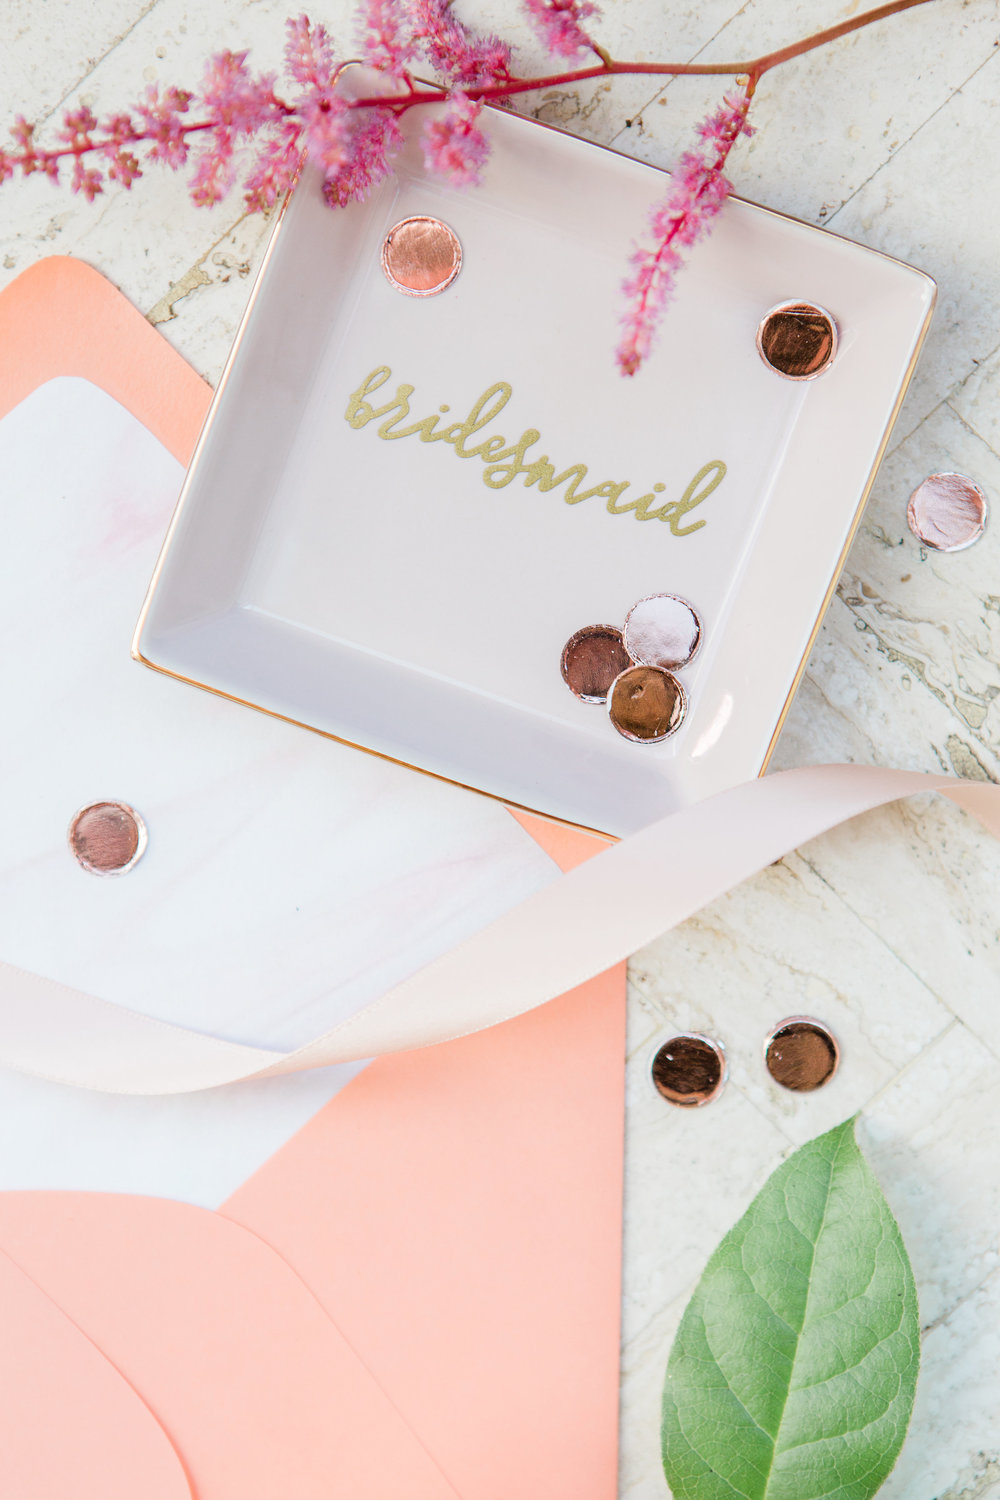 Bridesmaid Bridal Shower - Unique Gift Ideas for Bridesmaids - The Overwhelmed Bride Wedding Blog